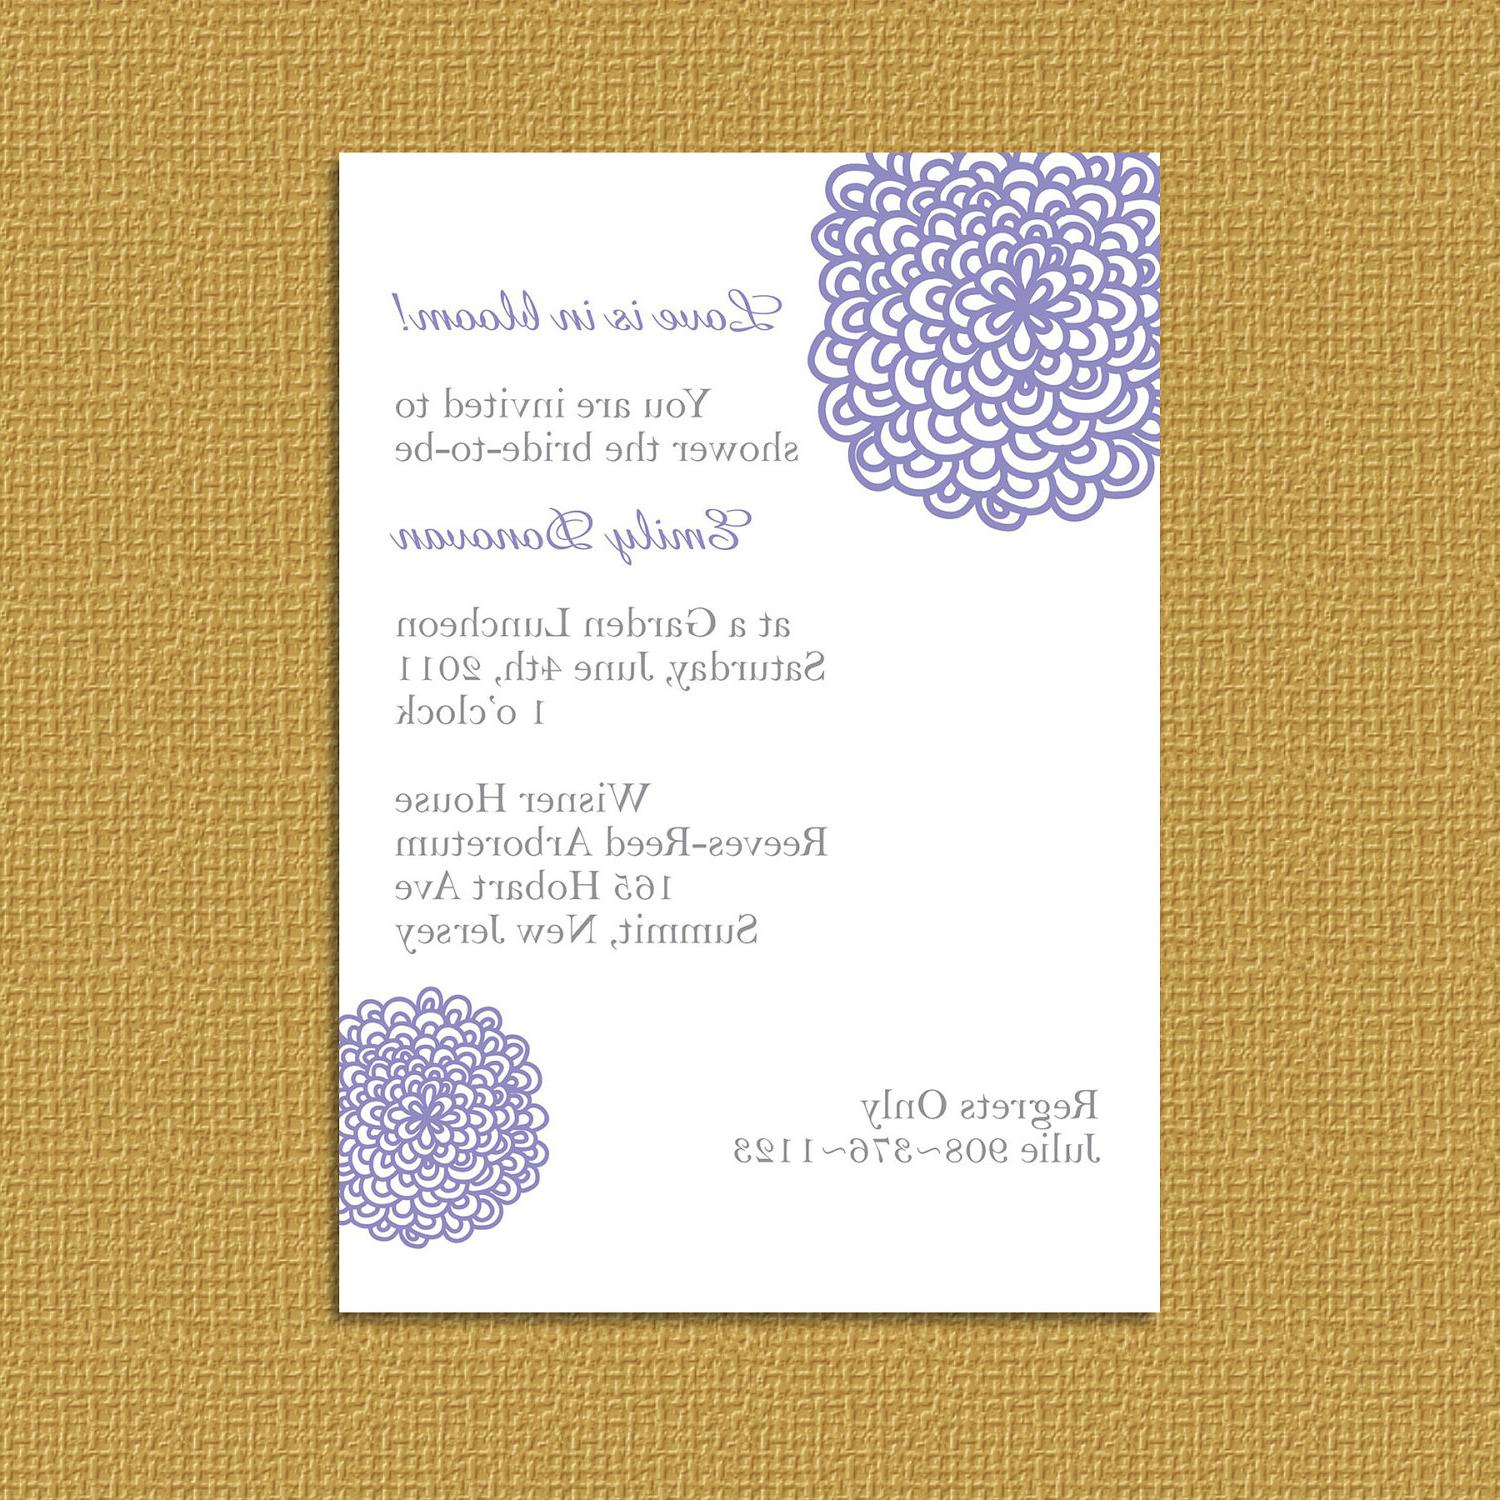 Delisha S Blog Storybook Wedding Invitation